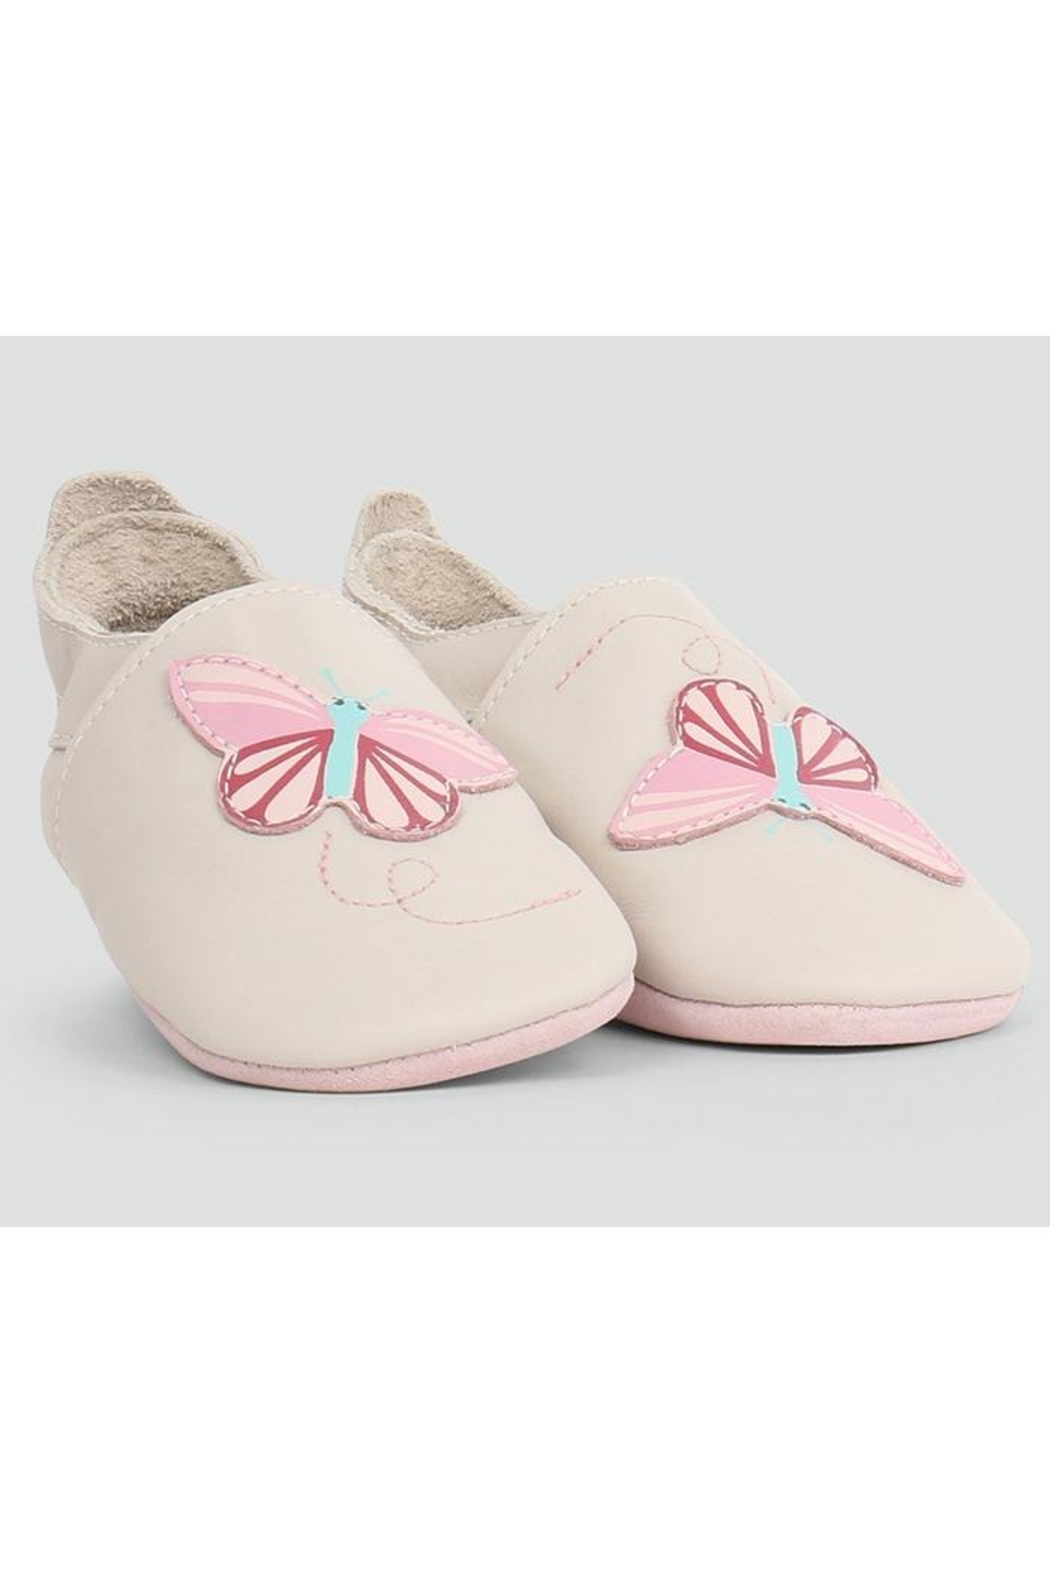 Bobux Butterfly Soft-Sole Slippers - Main Image